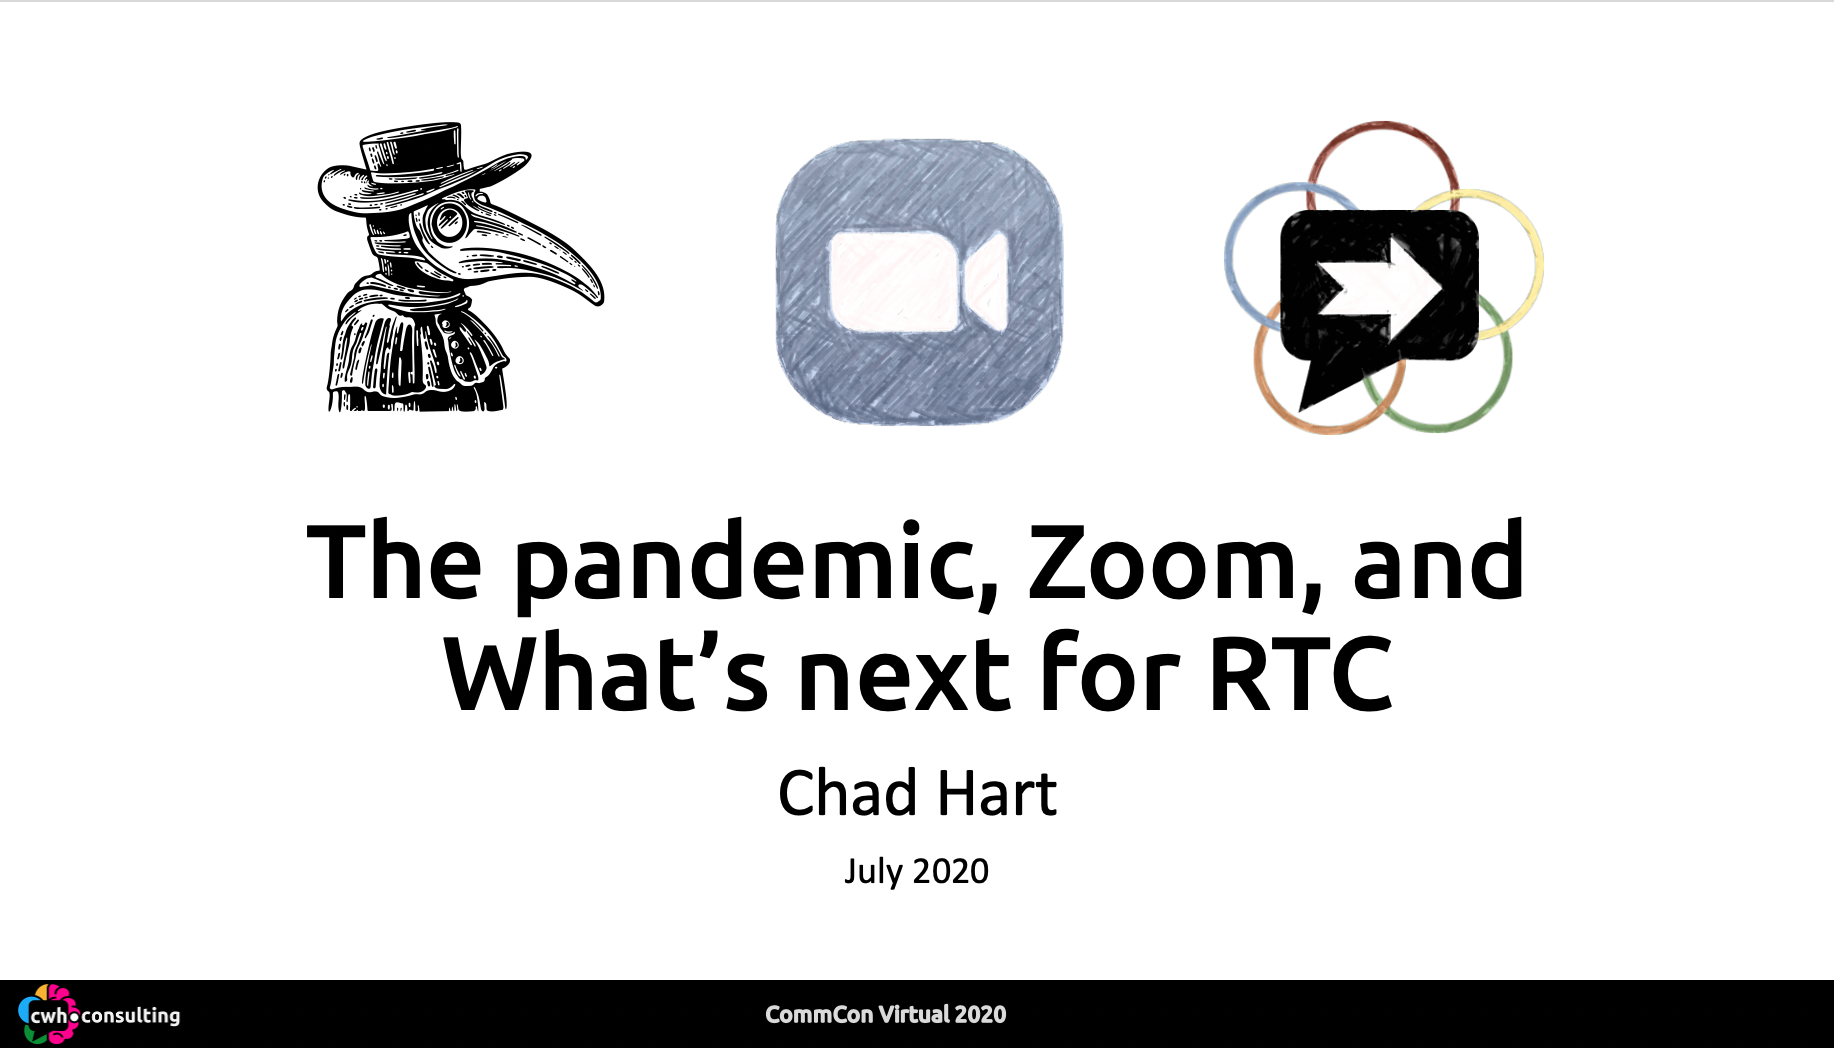 CommCon: The pandemic, Zoom, and What's next for RTC